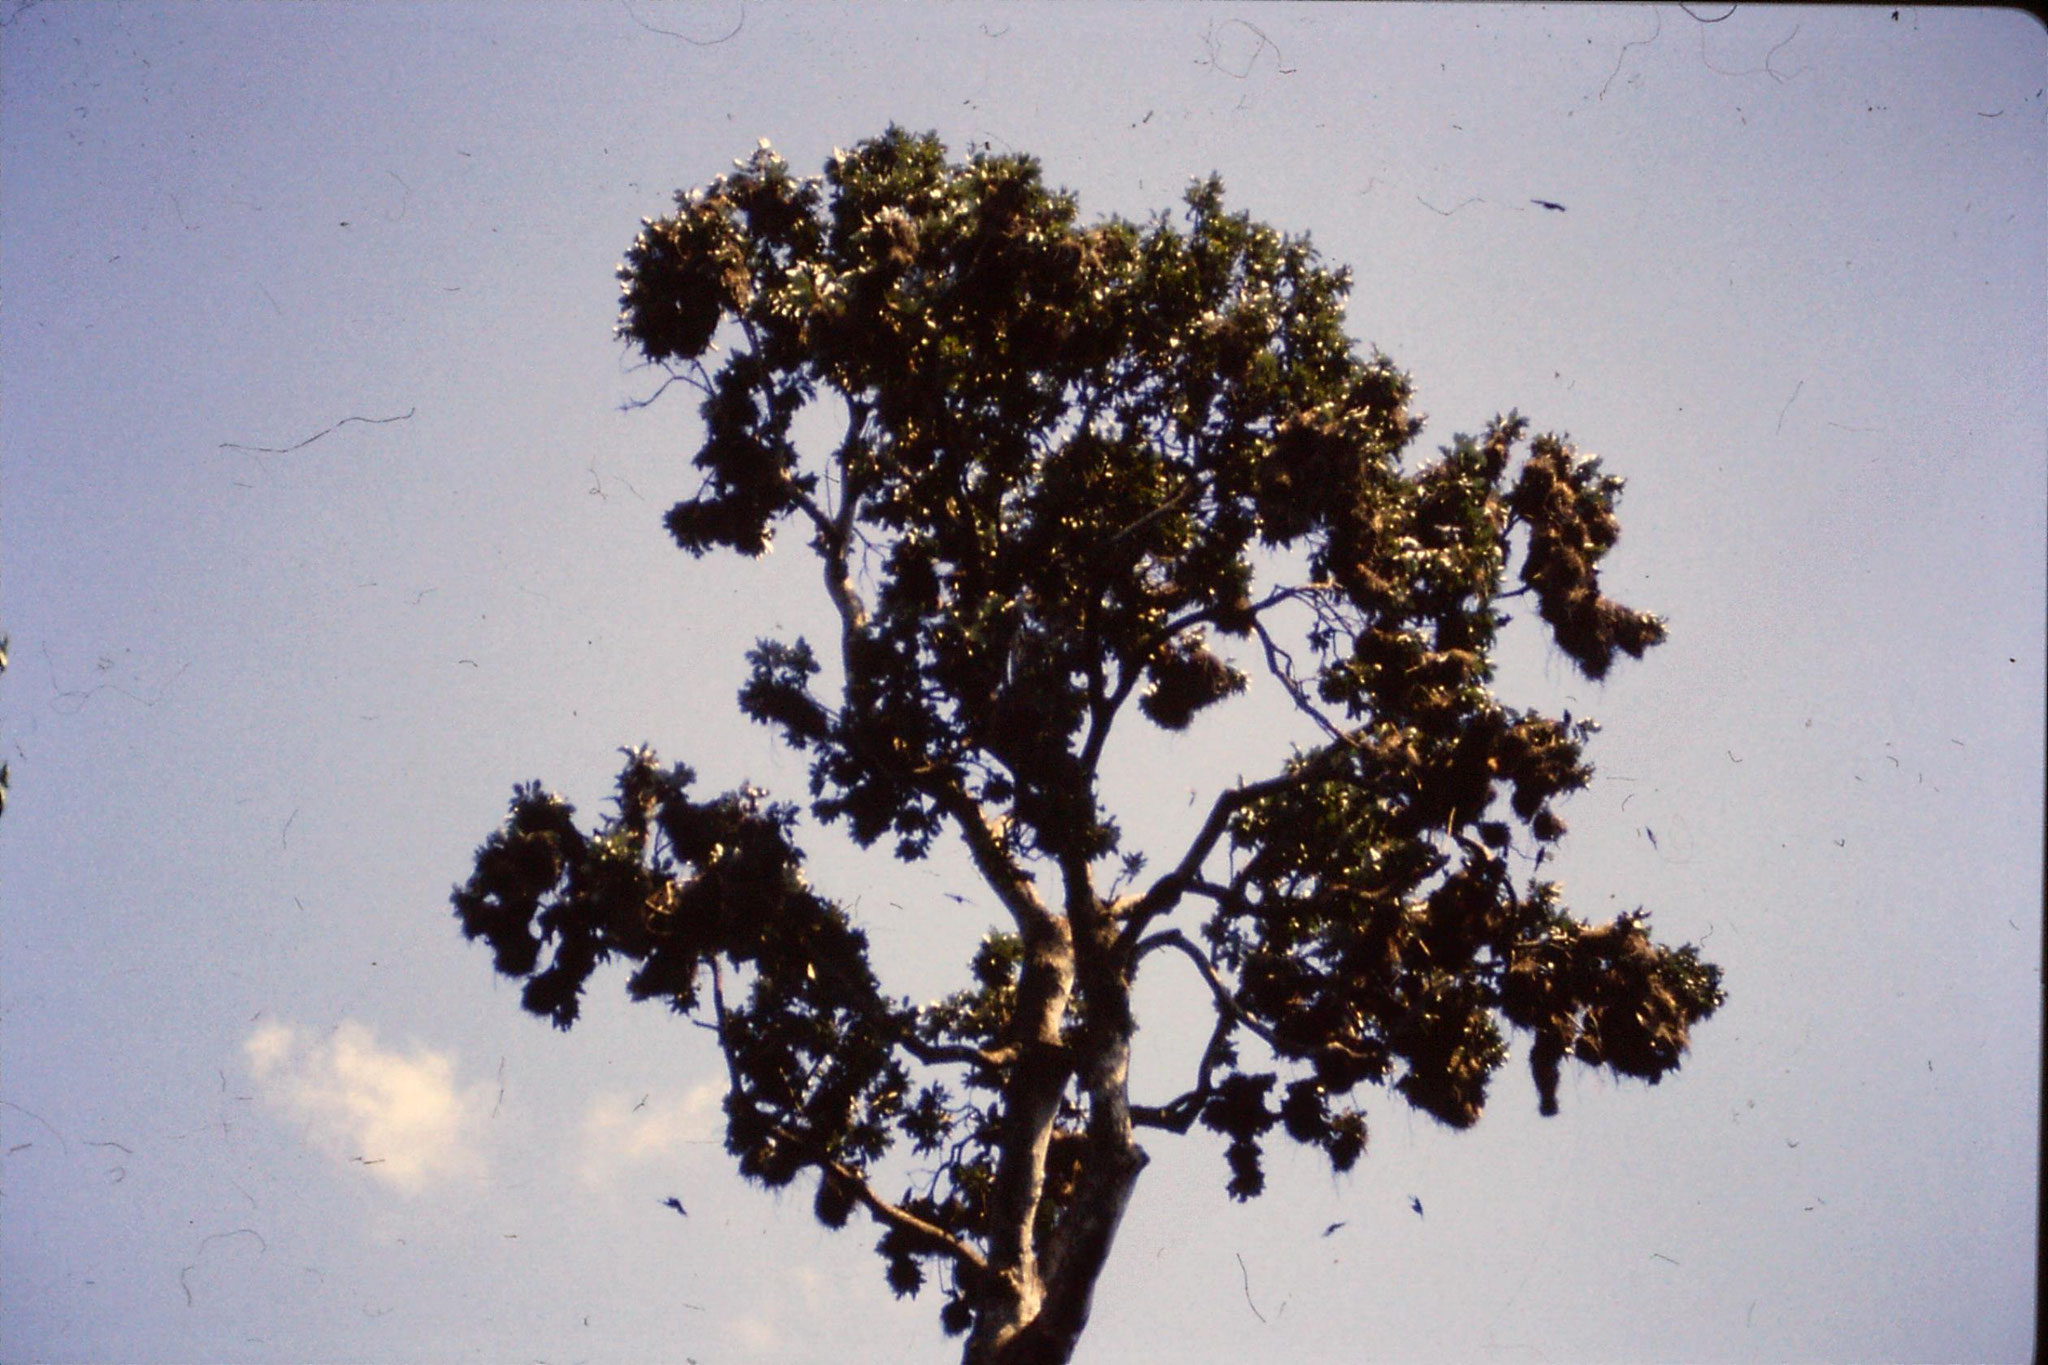 26/10/1990: 16: Cape Tribulation, metallic starling nest colony